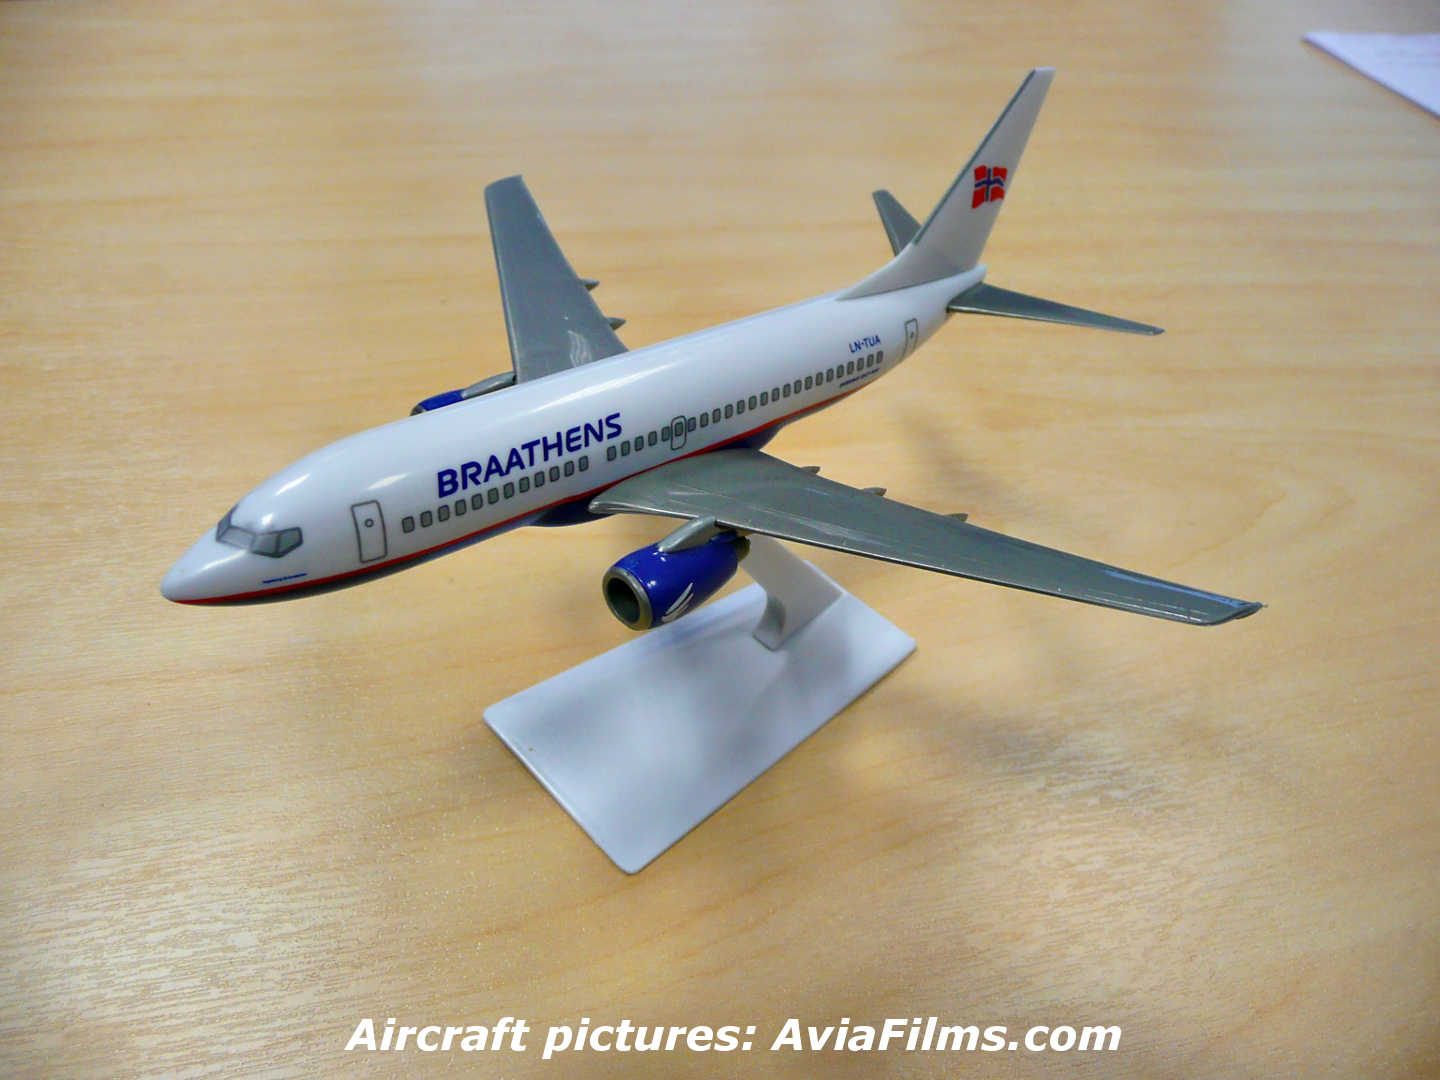 Toy Planes And Toy Helicopters Pictures to pin on Pinterest